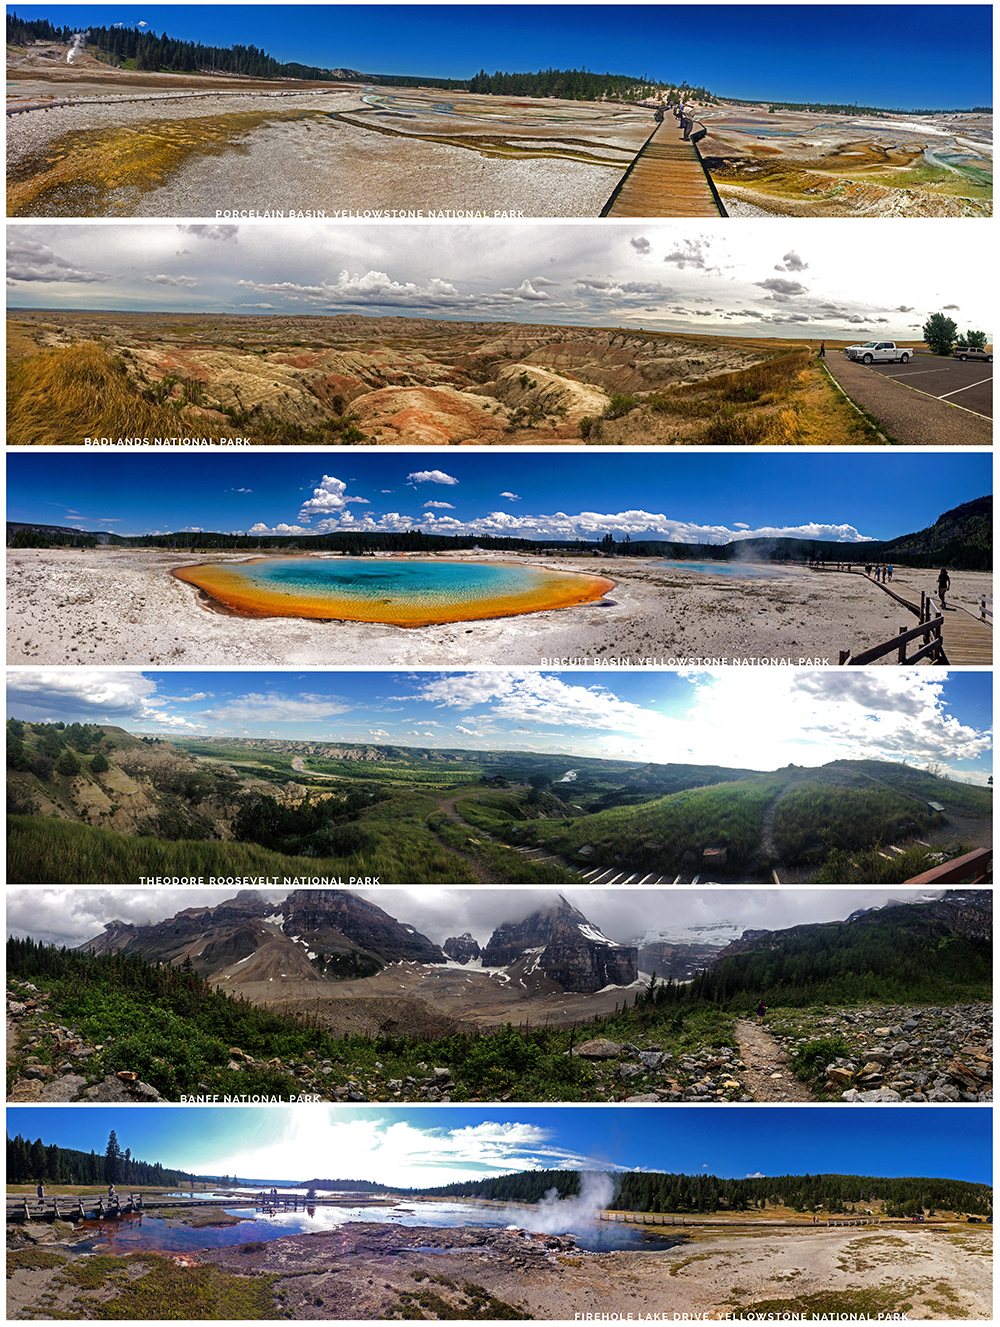 American Southwest 2016 Panorama Poster_09_02